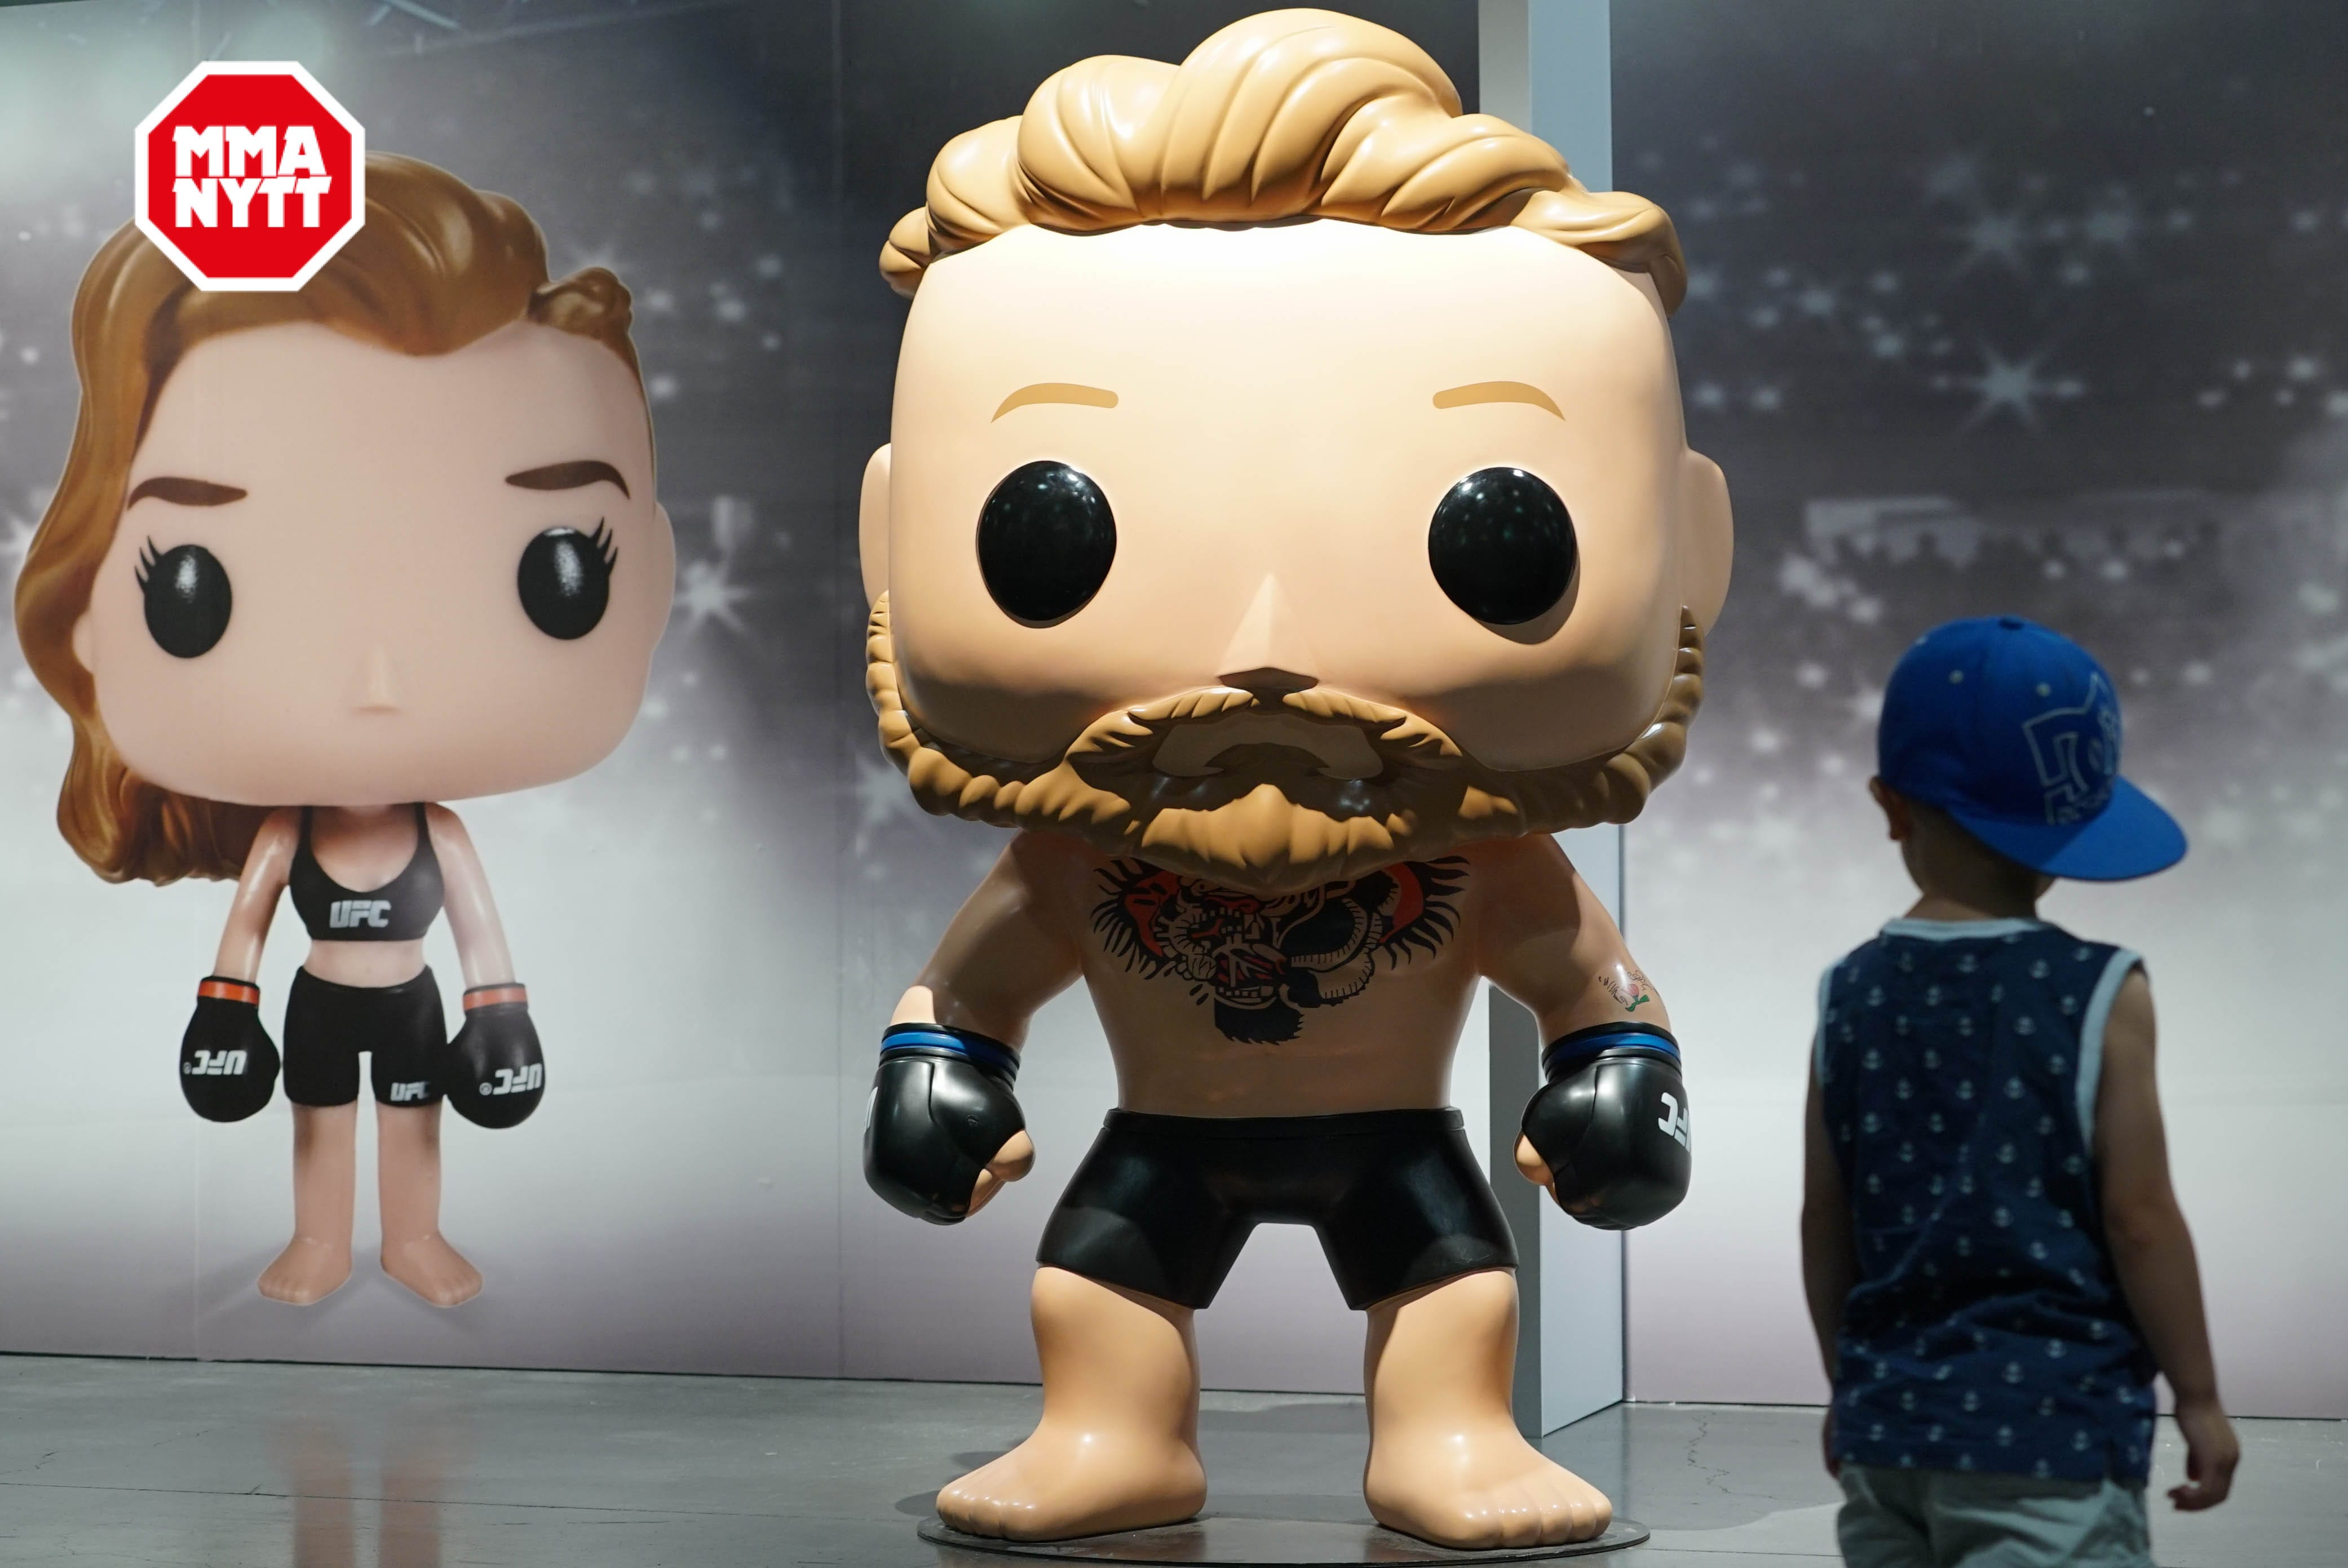 UFC 200 Las Vegas 2016-07-09 Conor McGregor Doll photo MMAnytt.se Vince Cachero (32 of 98)